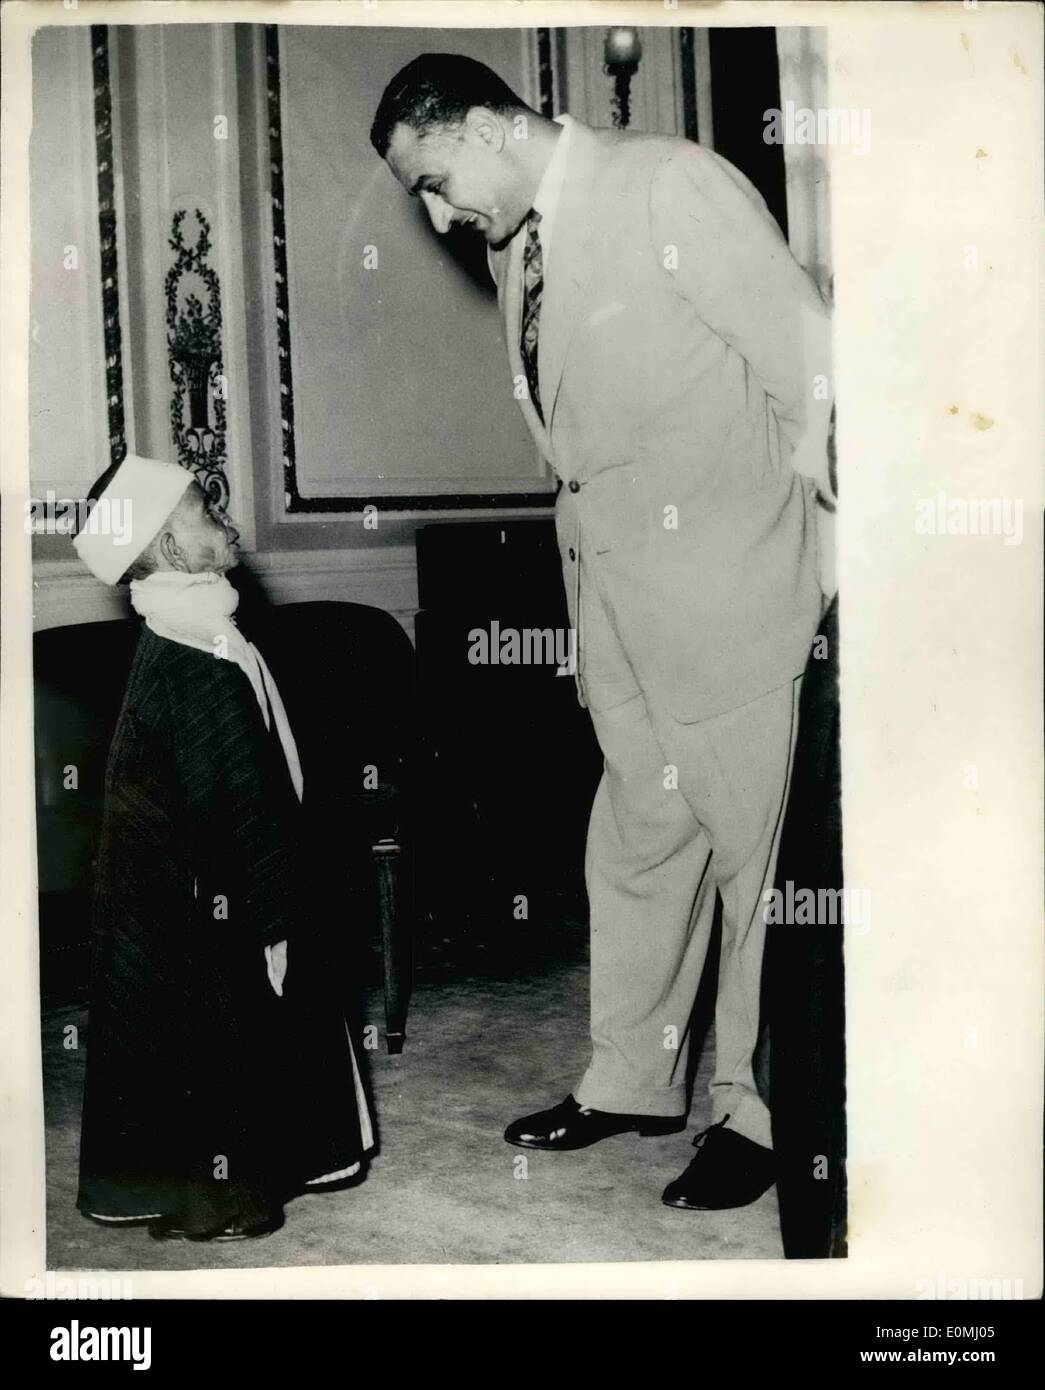 Jun. 06, 1955 - Premier Nasser meets Egypt's shortest Man; Sheike Ahmed Salem, the shortest man in Egypt, who - Stock Image